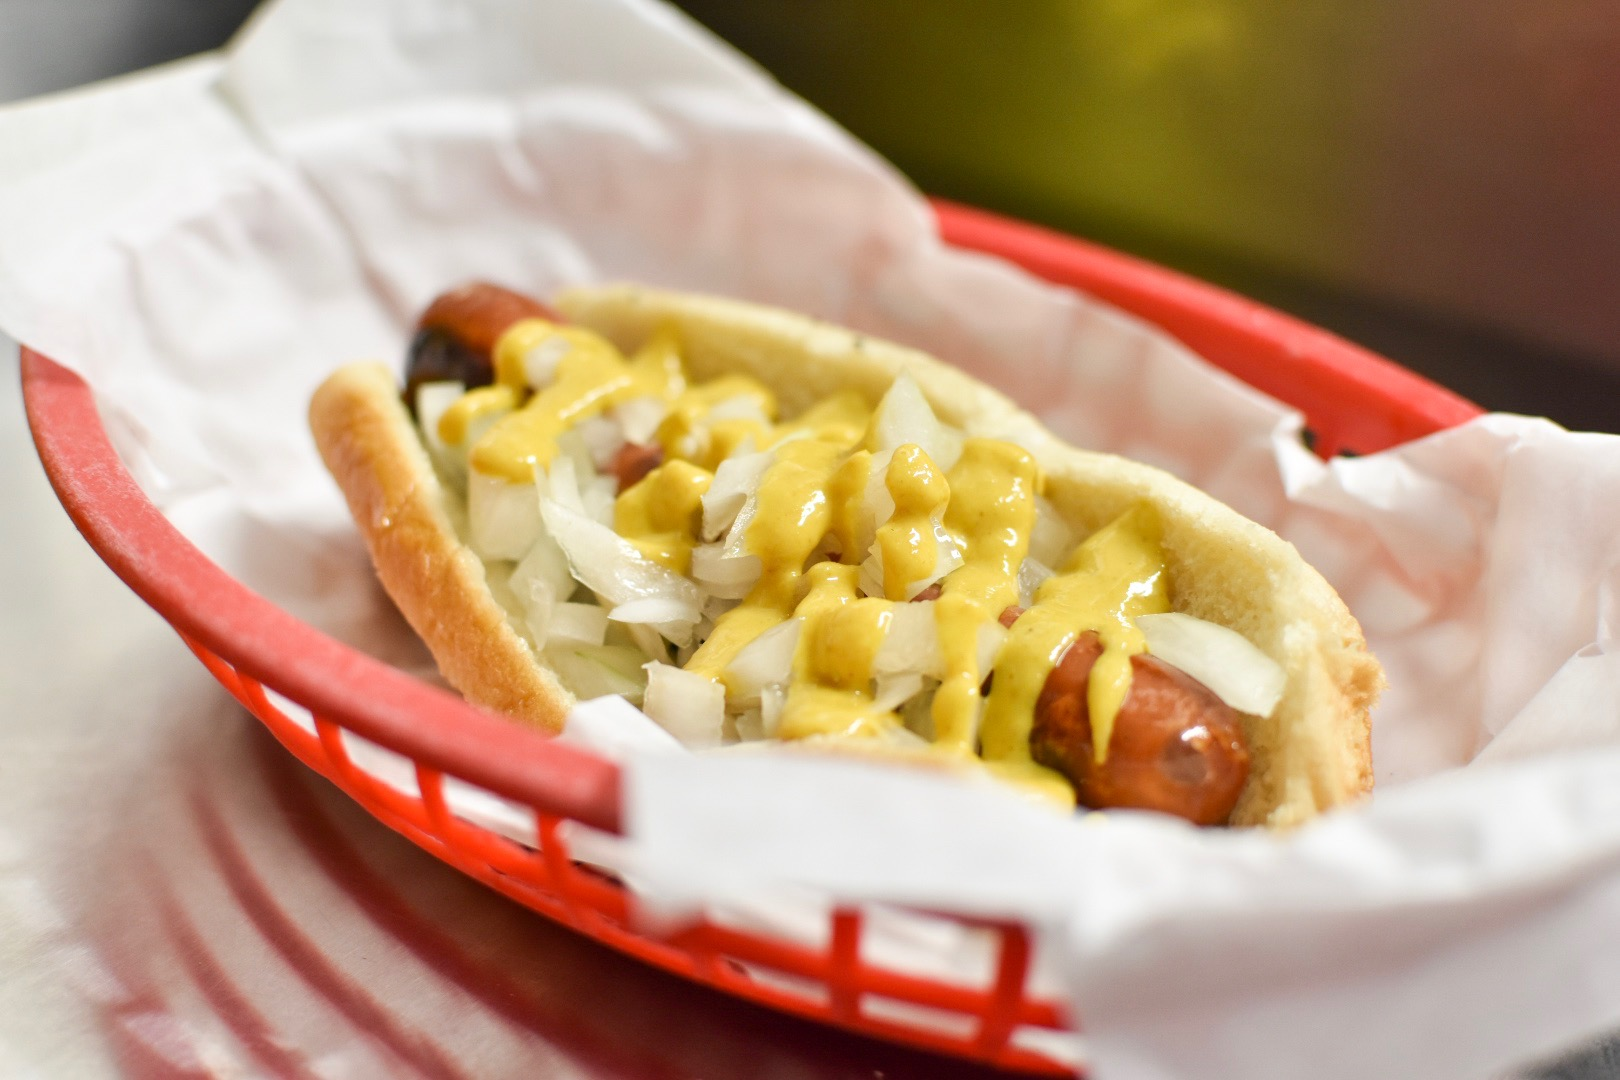 Coney Dog.jpg